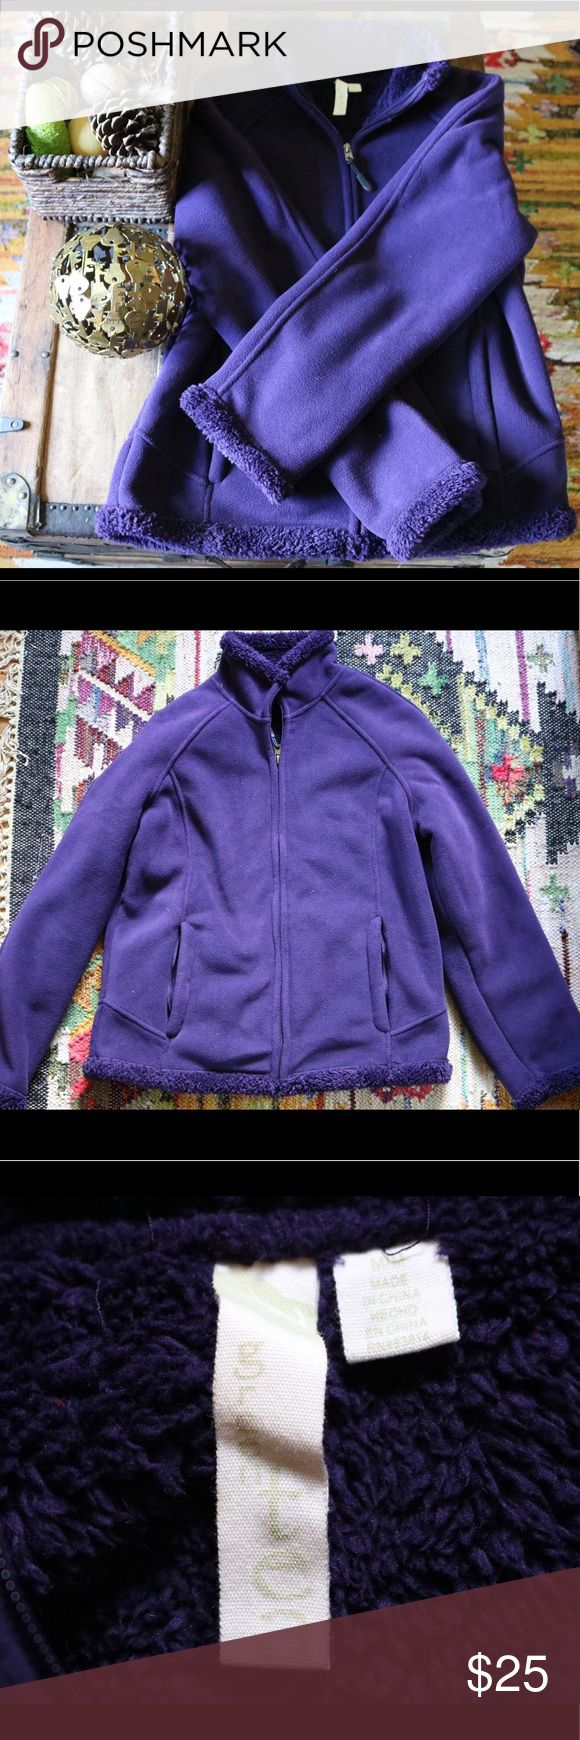 Purple fleece zip up jacket Thick, warm and uber cozy, this velvety fleece jacket is perfect for cold nights. Be bold in a bright royal shade of purple. NWOT. Green Tea Jackets & Coats